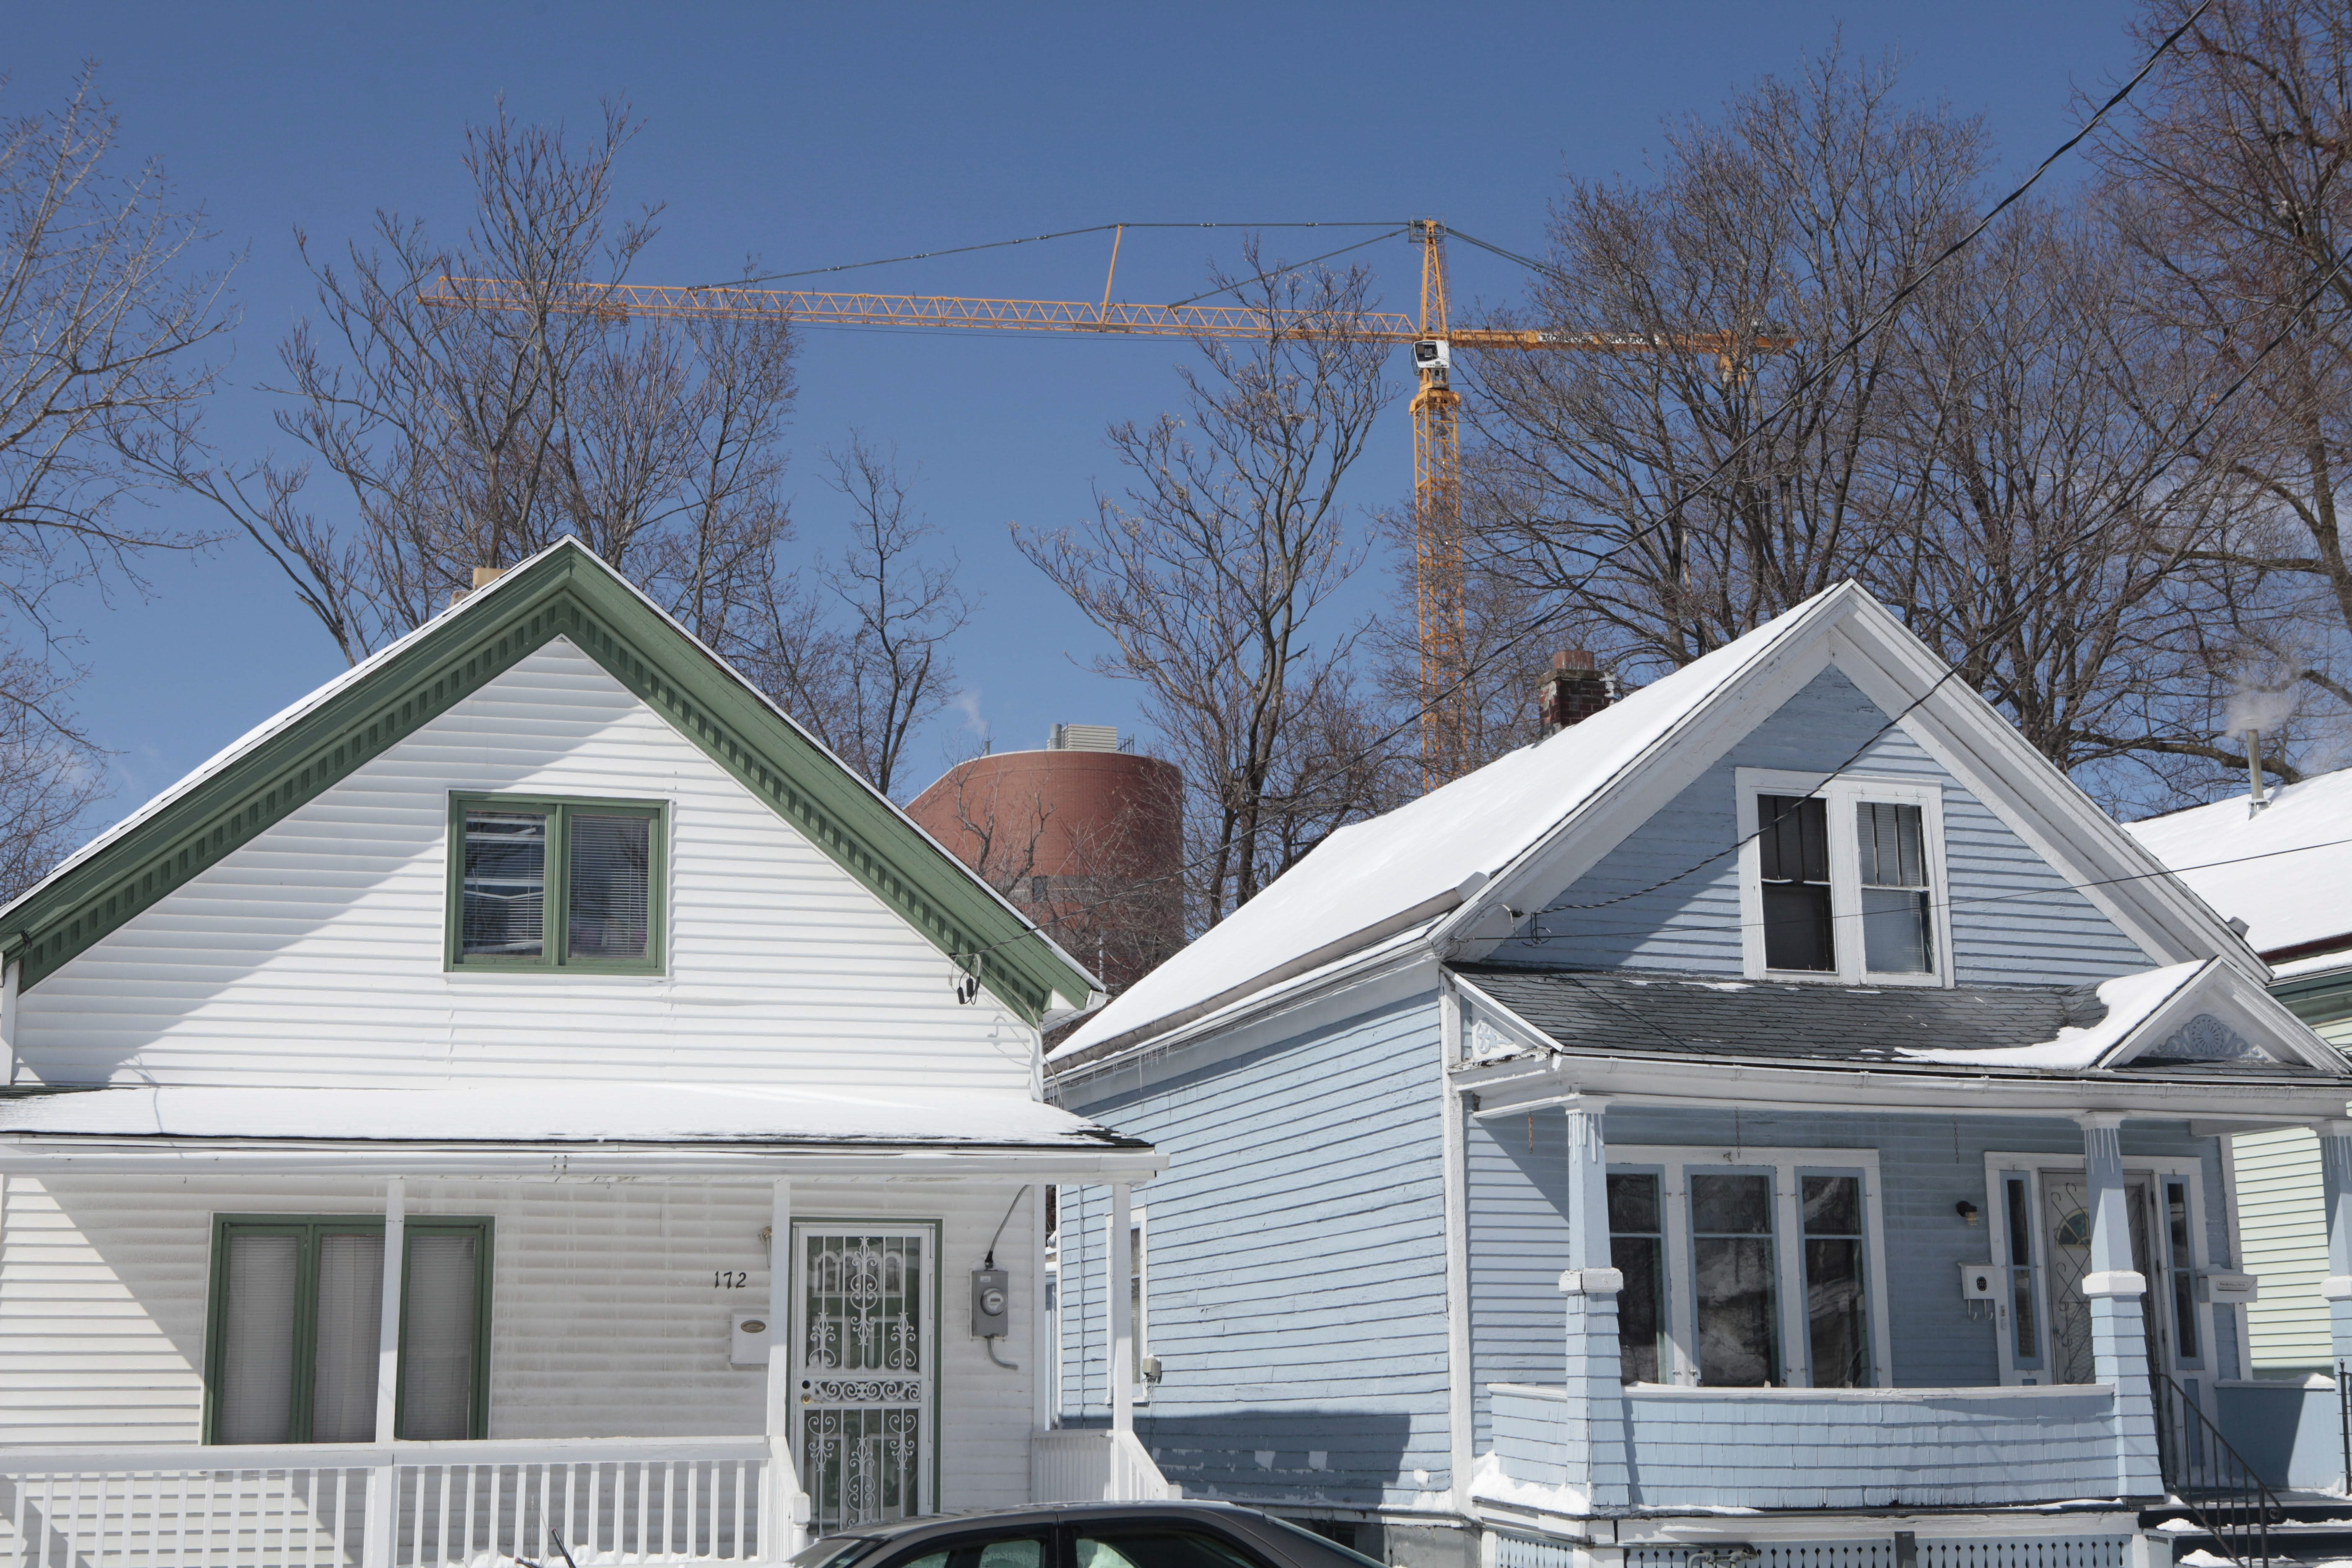 Construction on the Medical Campus near the Fruit Belt should raise property values and also taxes on the homeowners. (Derek Gee/Buffalo News)